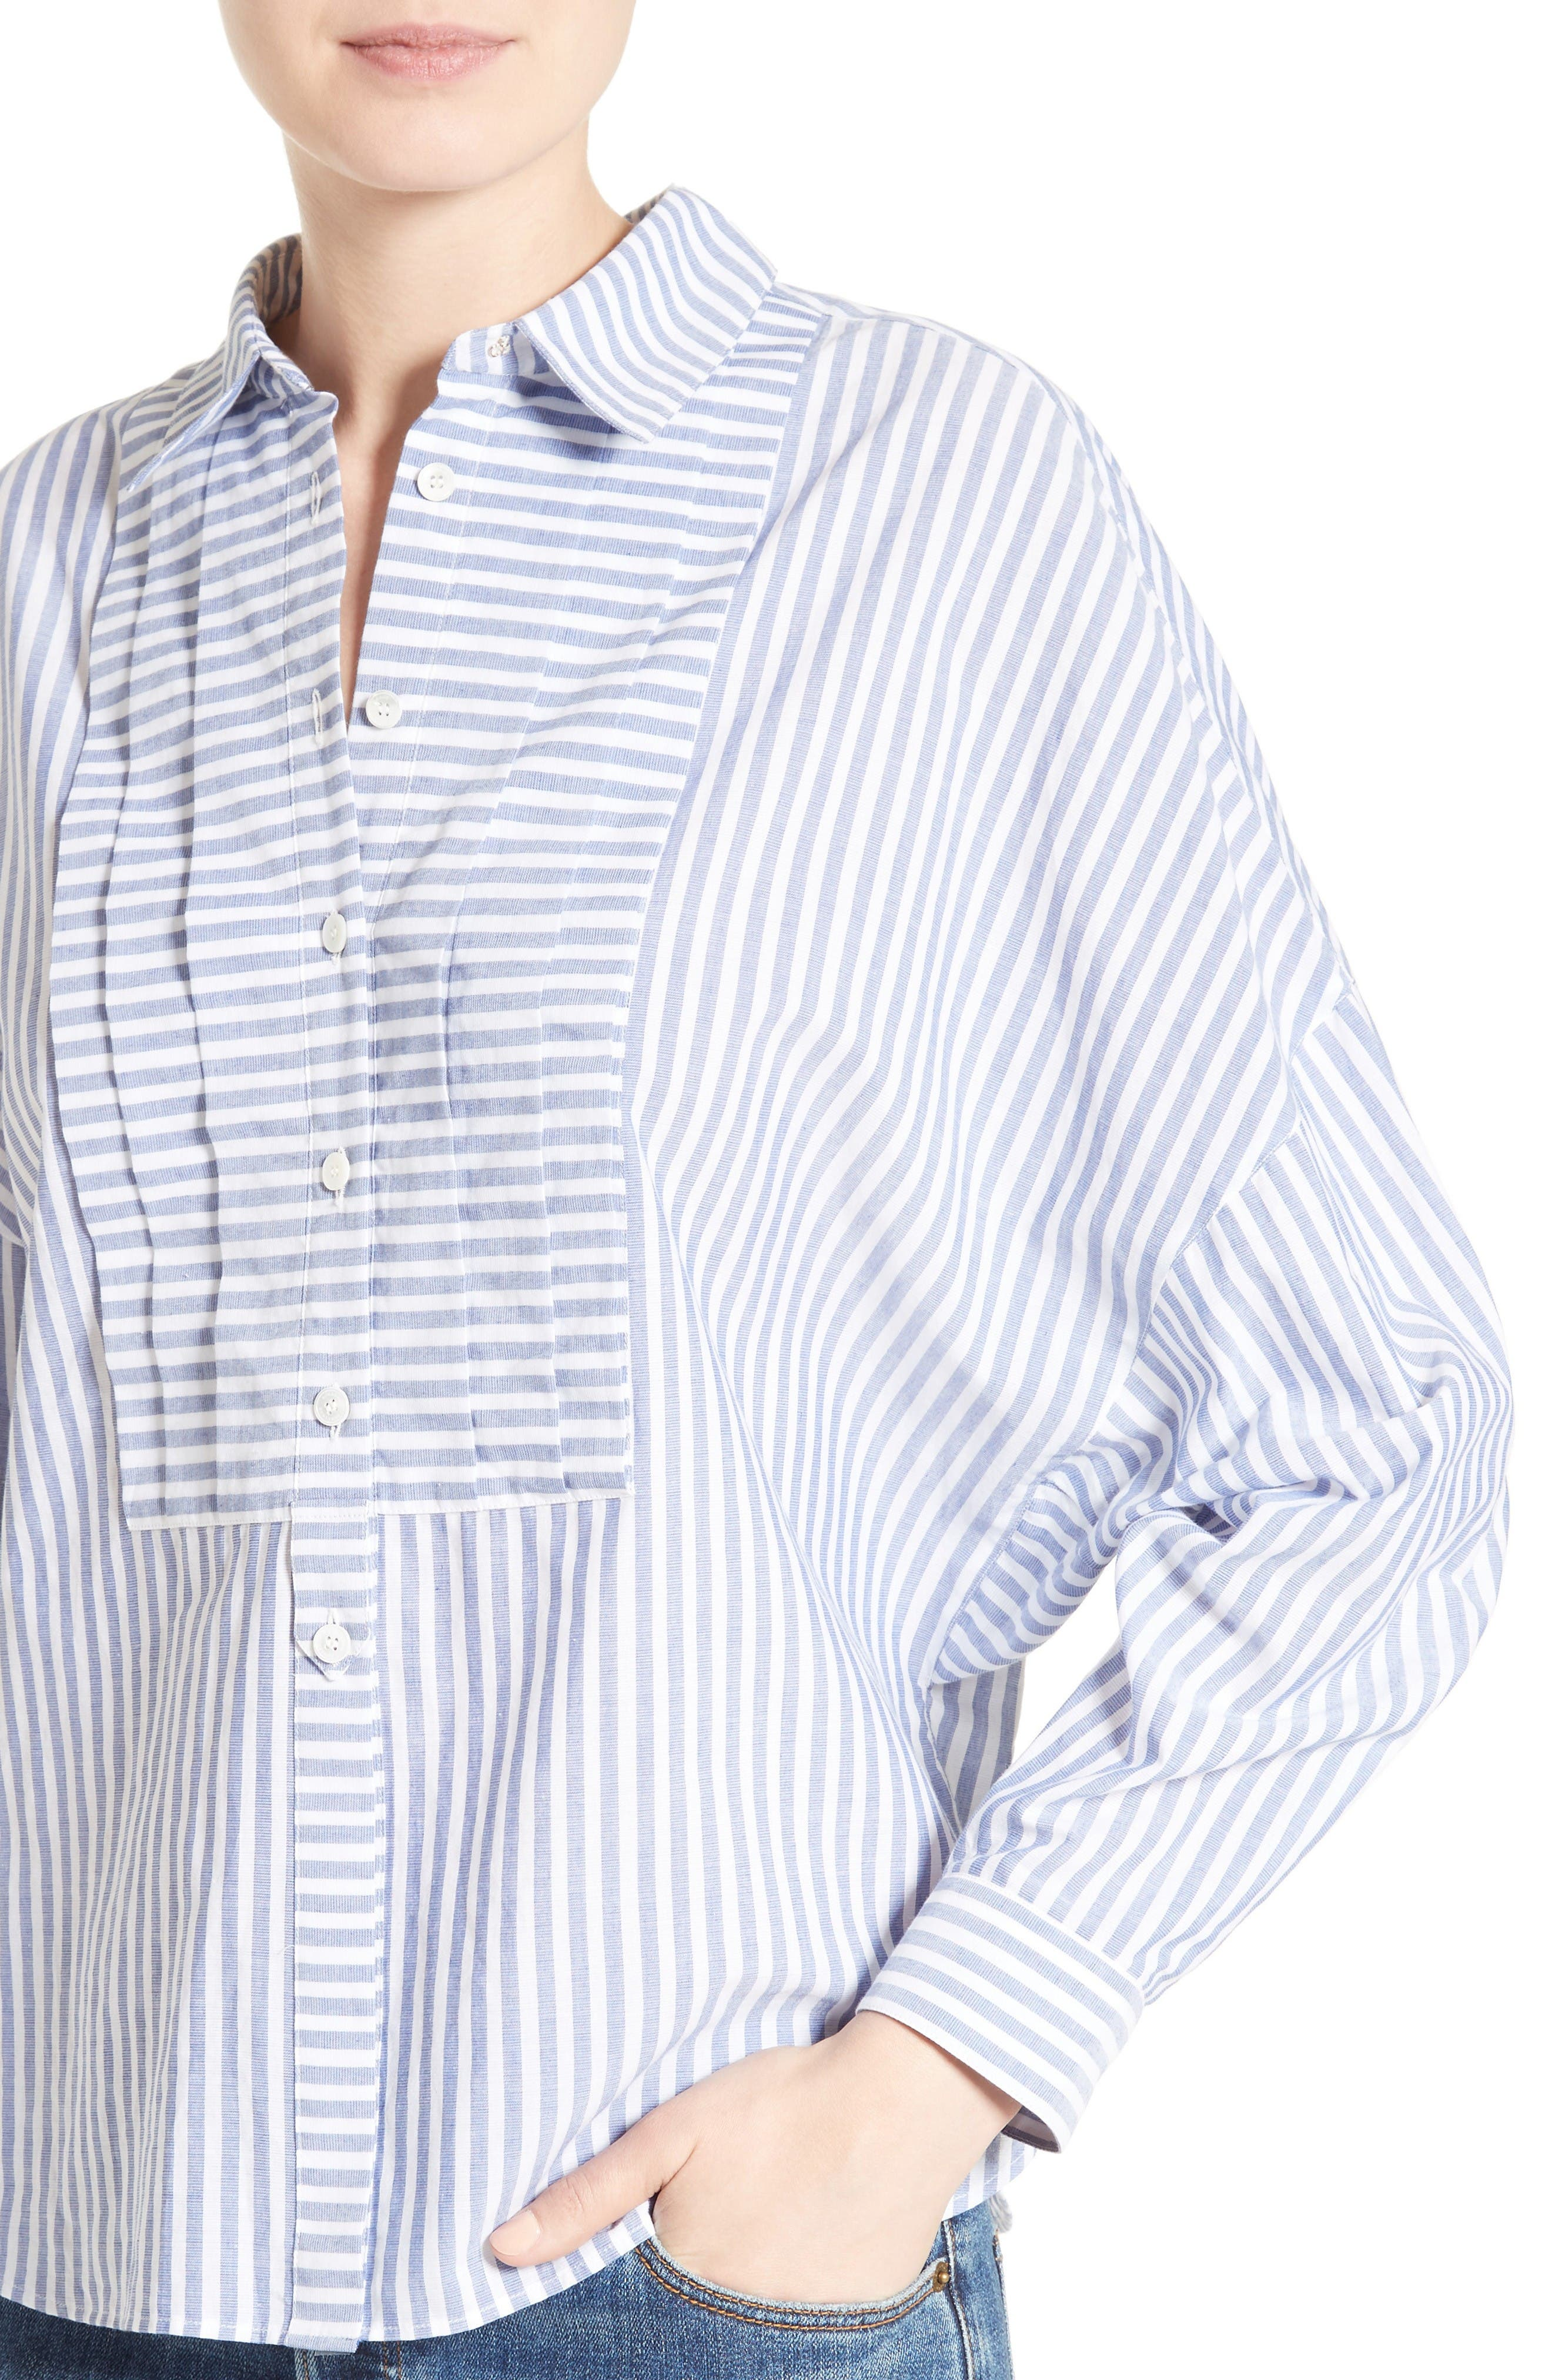 Posy Stripe Bib Boyfriend Shirt,                             Alternate thumbnail 6, color,                             Pale Blue/ White